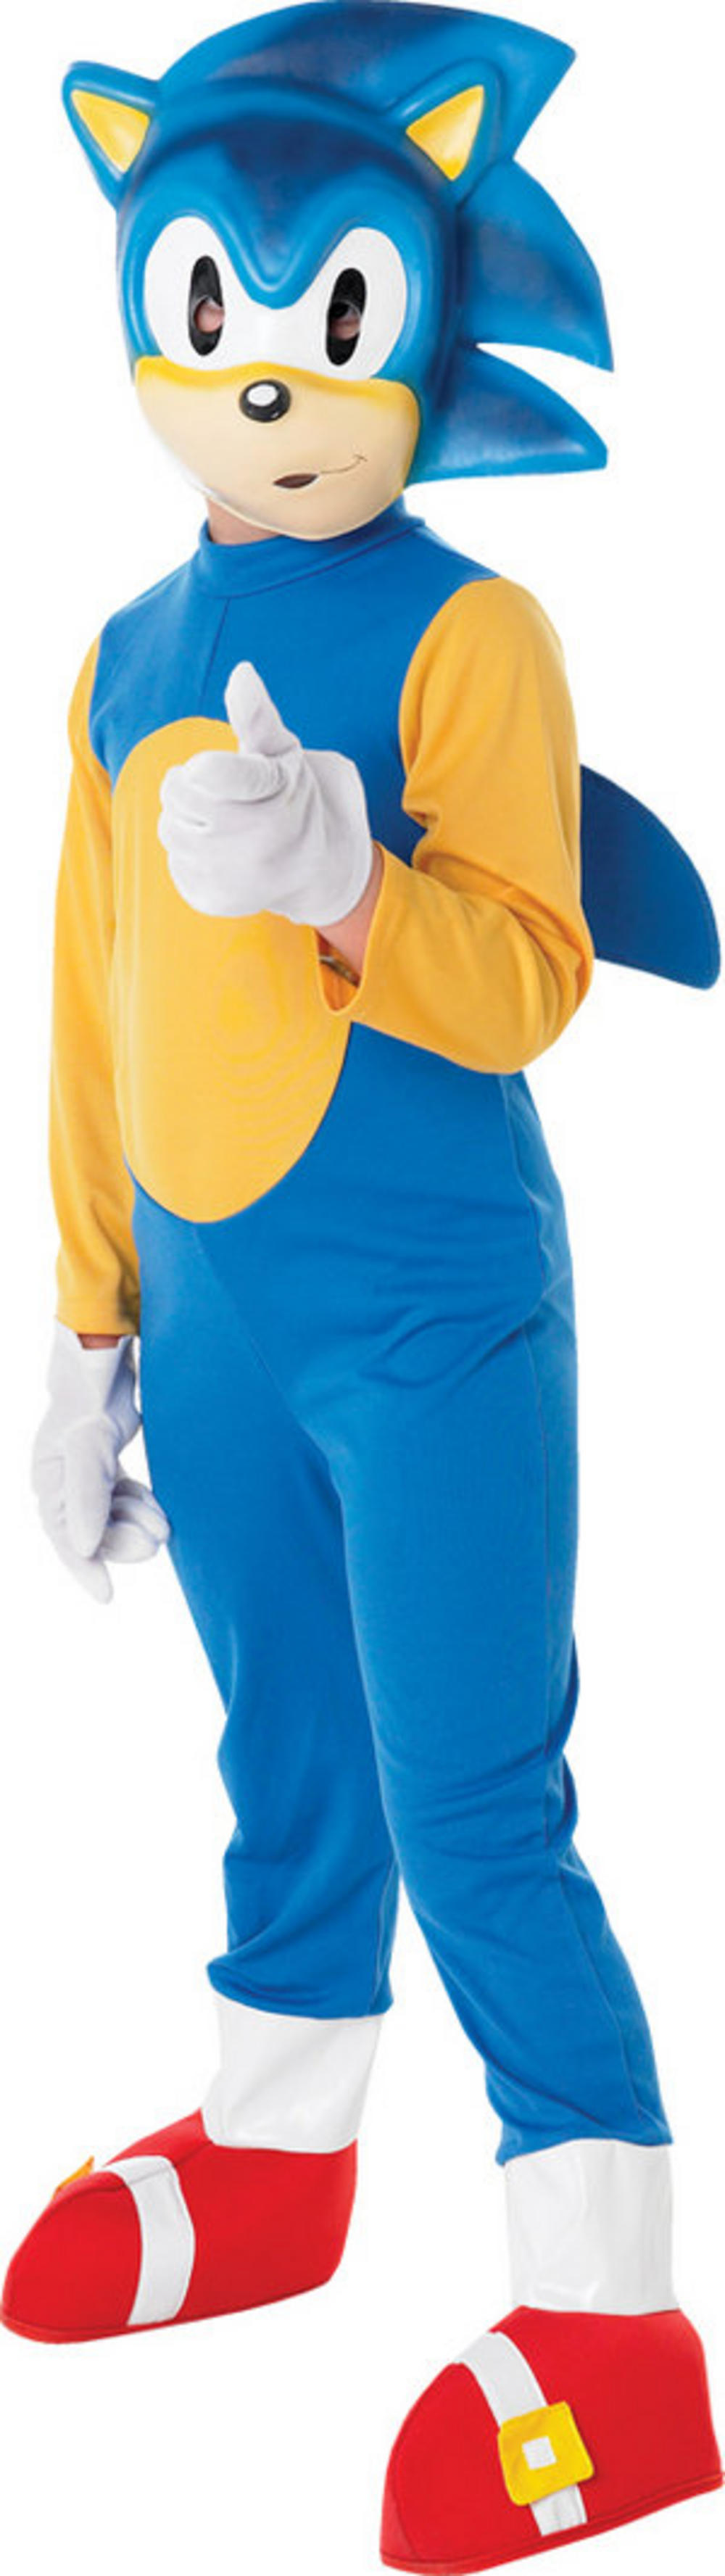 Boysu0027 Sonic The Hedgehog Costume  sc 1 st  Mega Fancy Dress & Boysu0027 Sonic The Hedgehog Costume | TV Book and Film Costumes | Mega ...